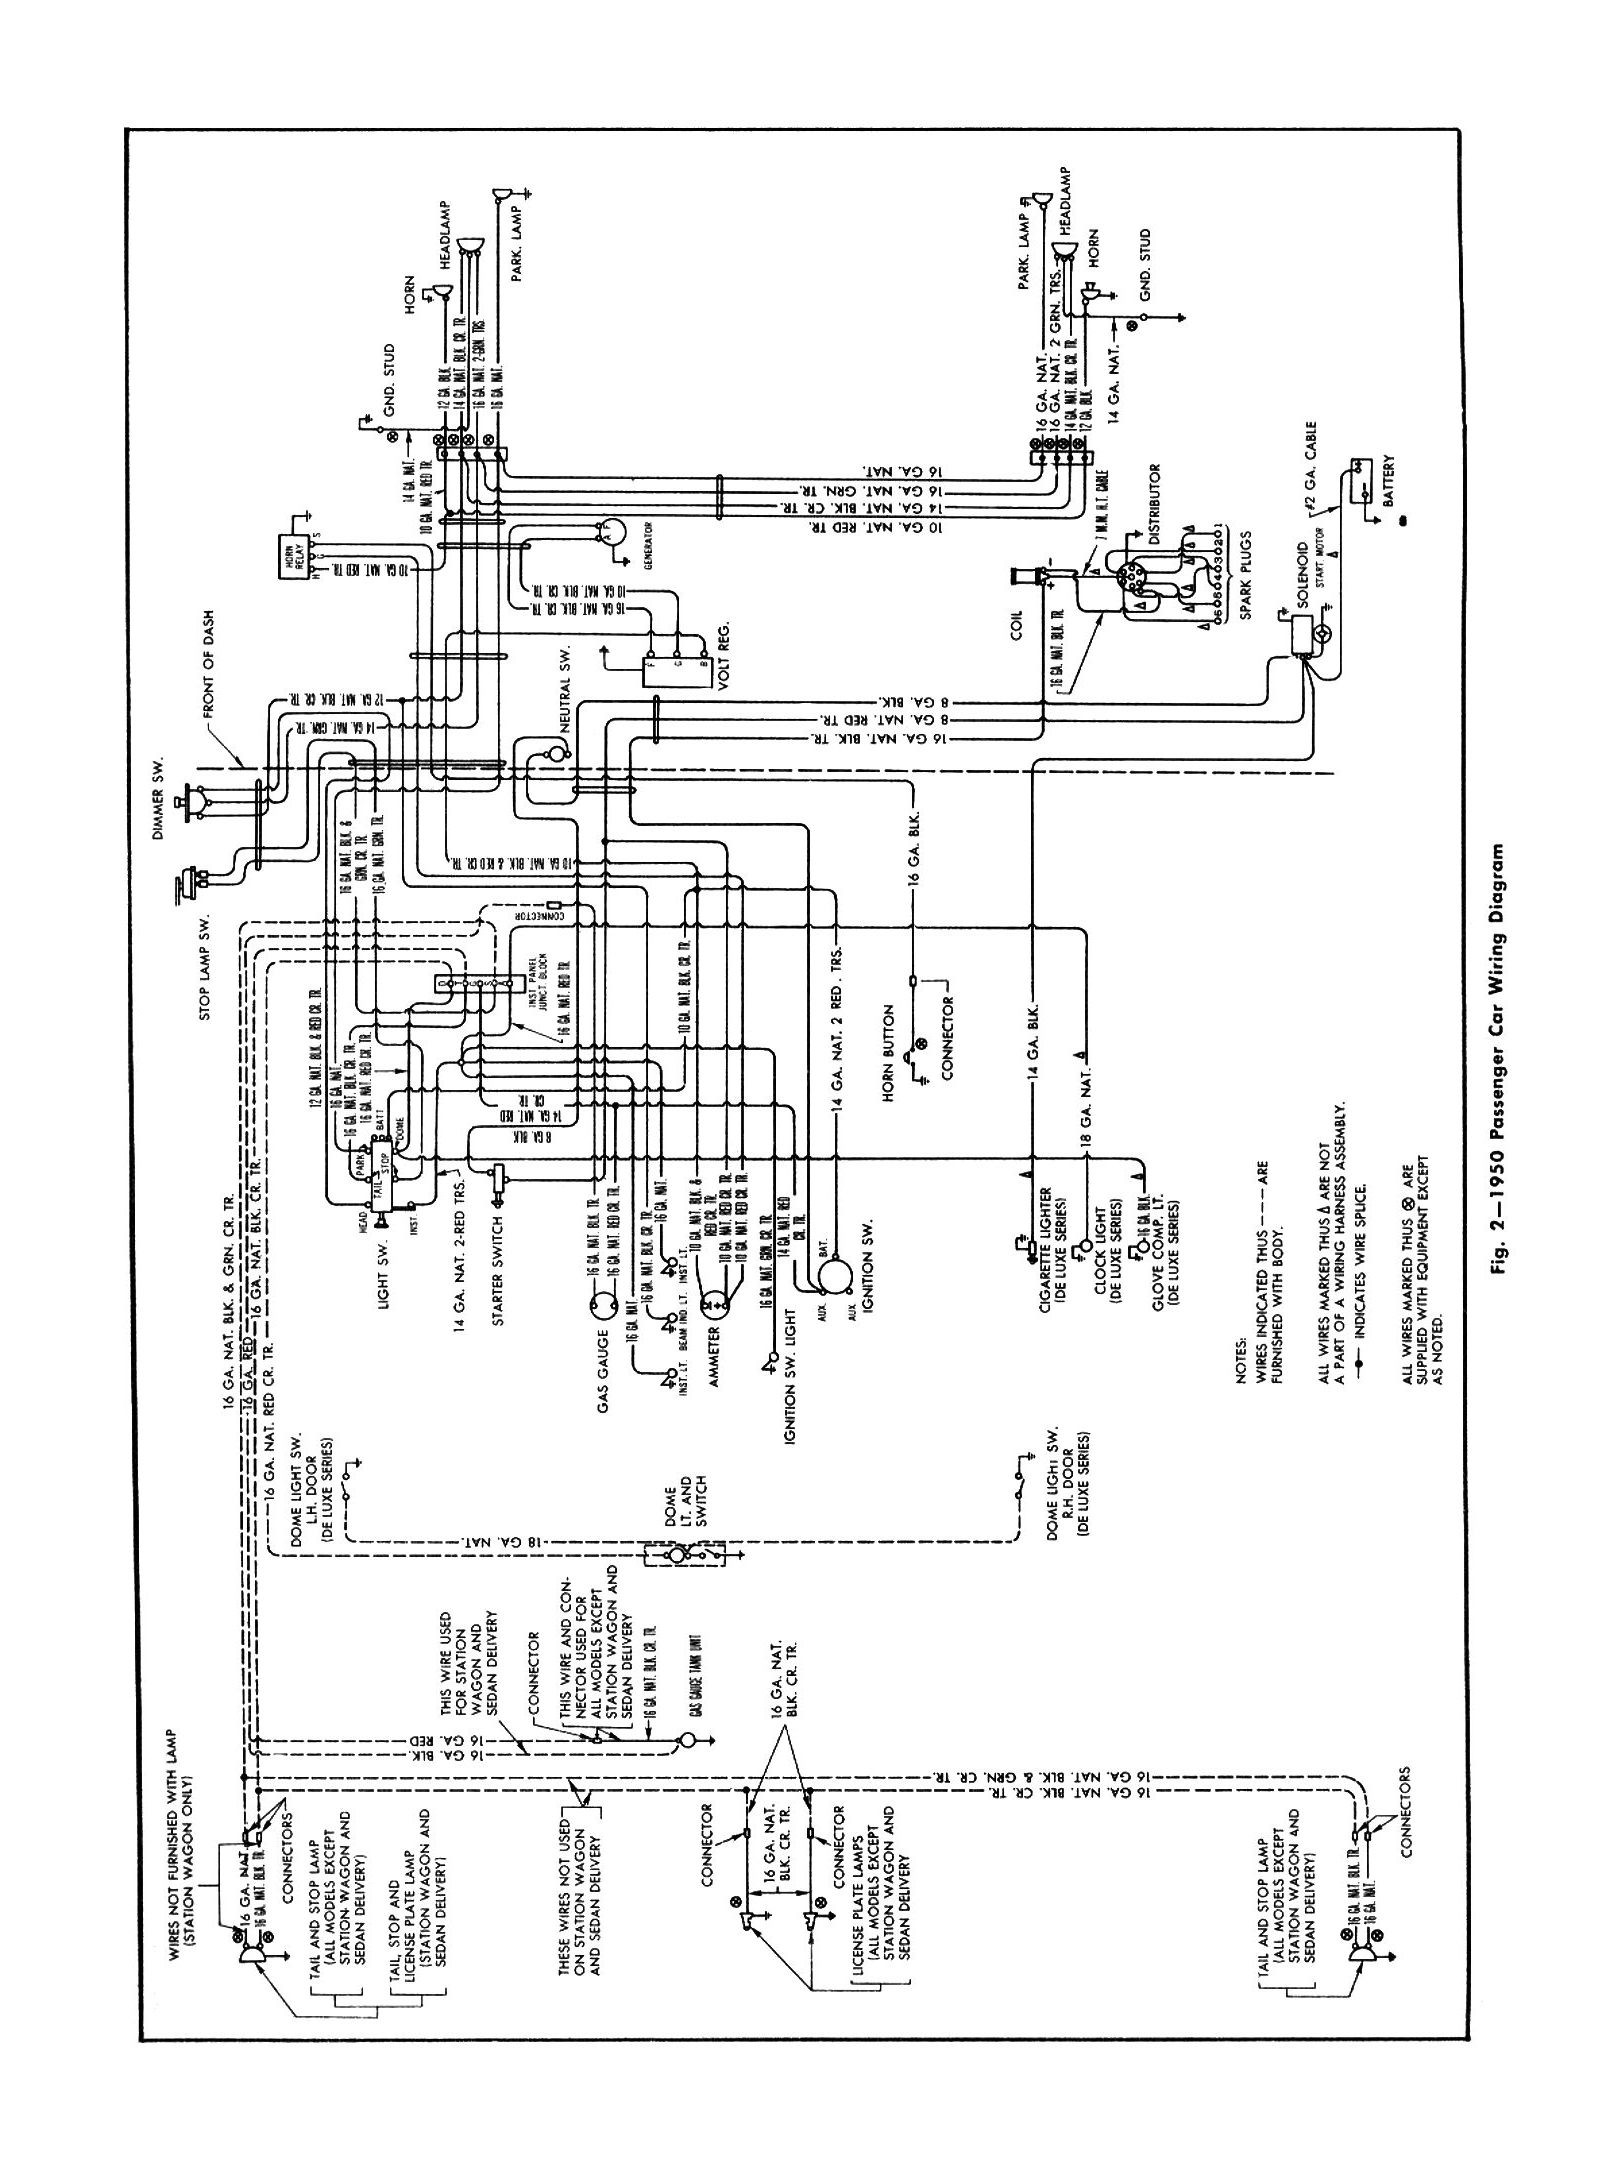 50car chevy wiring diagrams 1950 chevy truck wiring diagram at alyssarenee.co